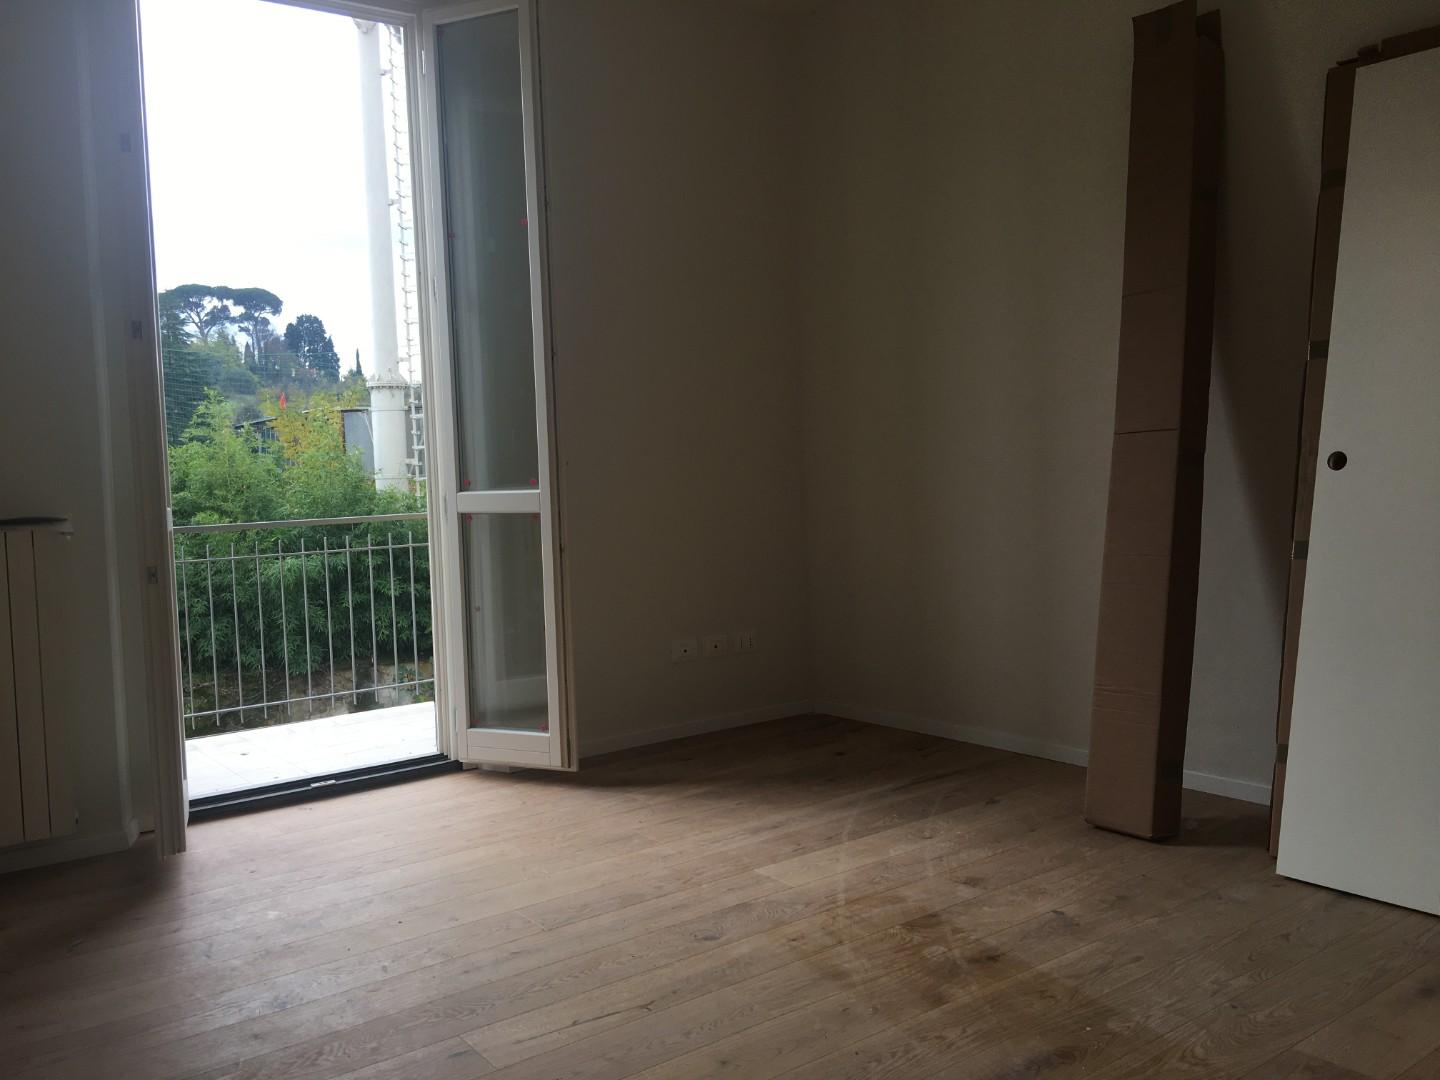 Foto 3/18 per rif. BB due strade € 520.000